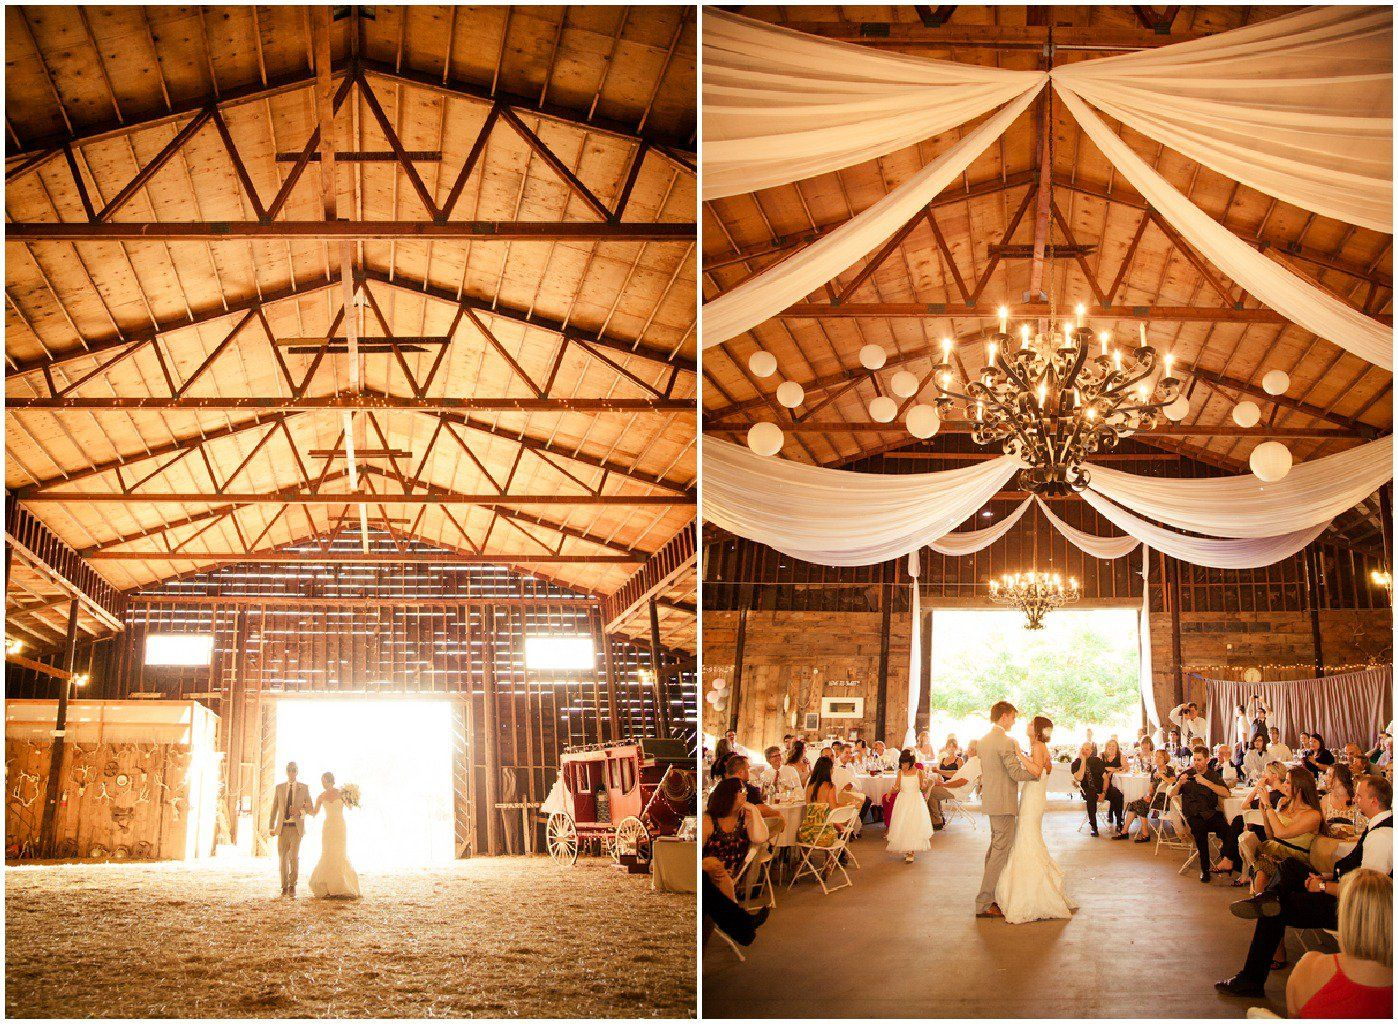 Barn Weddings in California